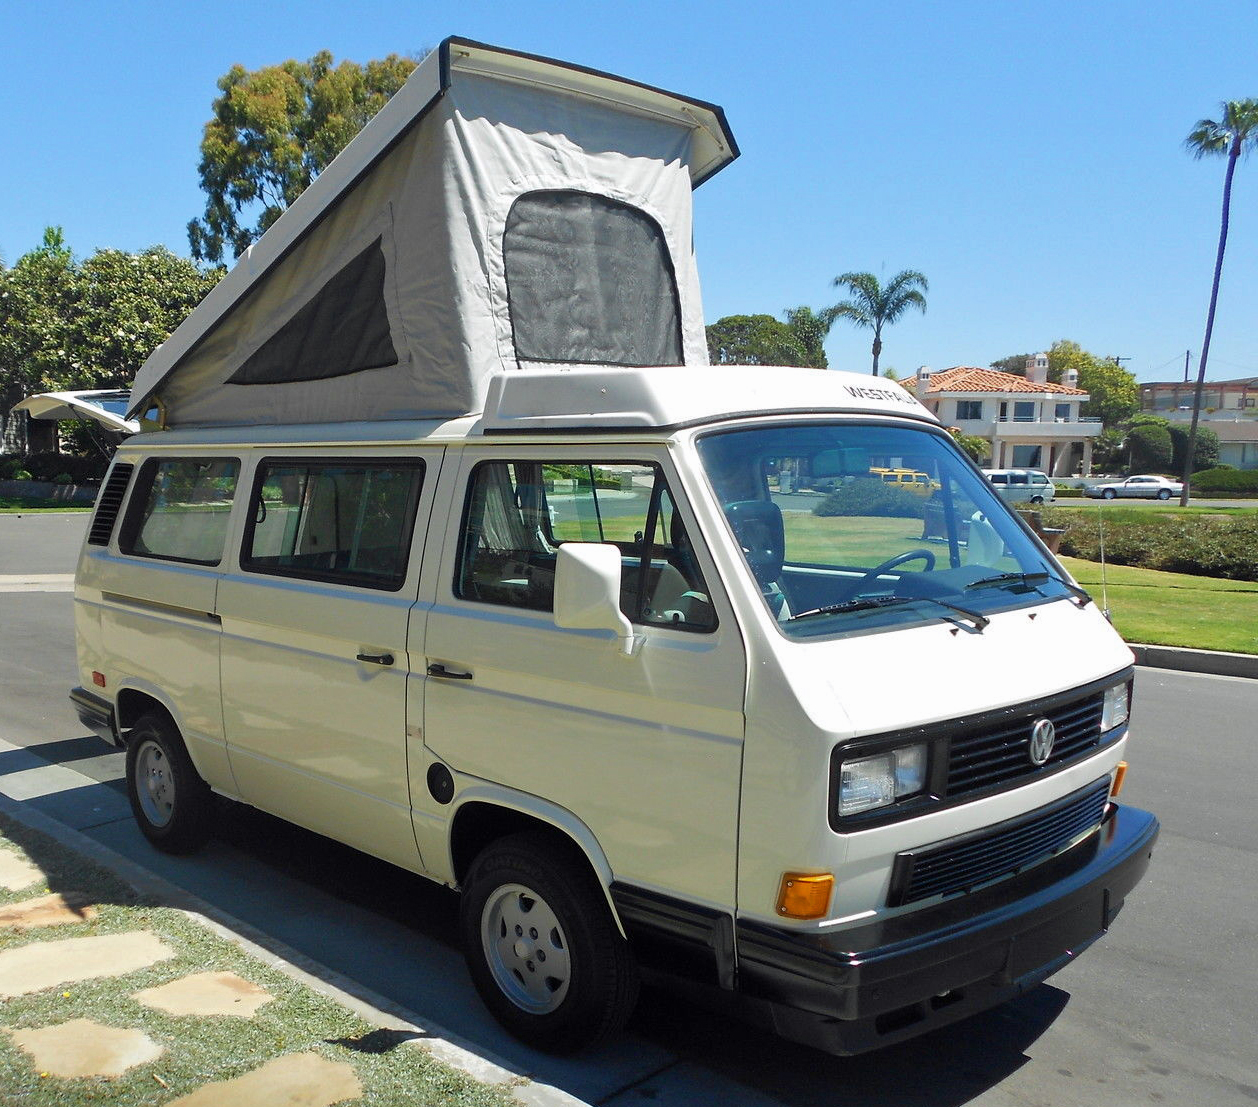 1989 Vw Vanagon Westfalia Camper Auction In Huntington